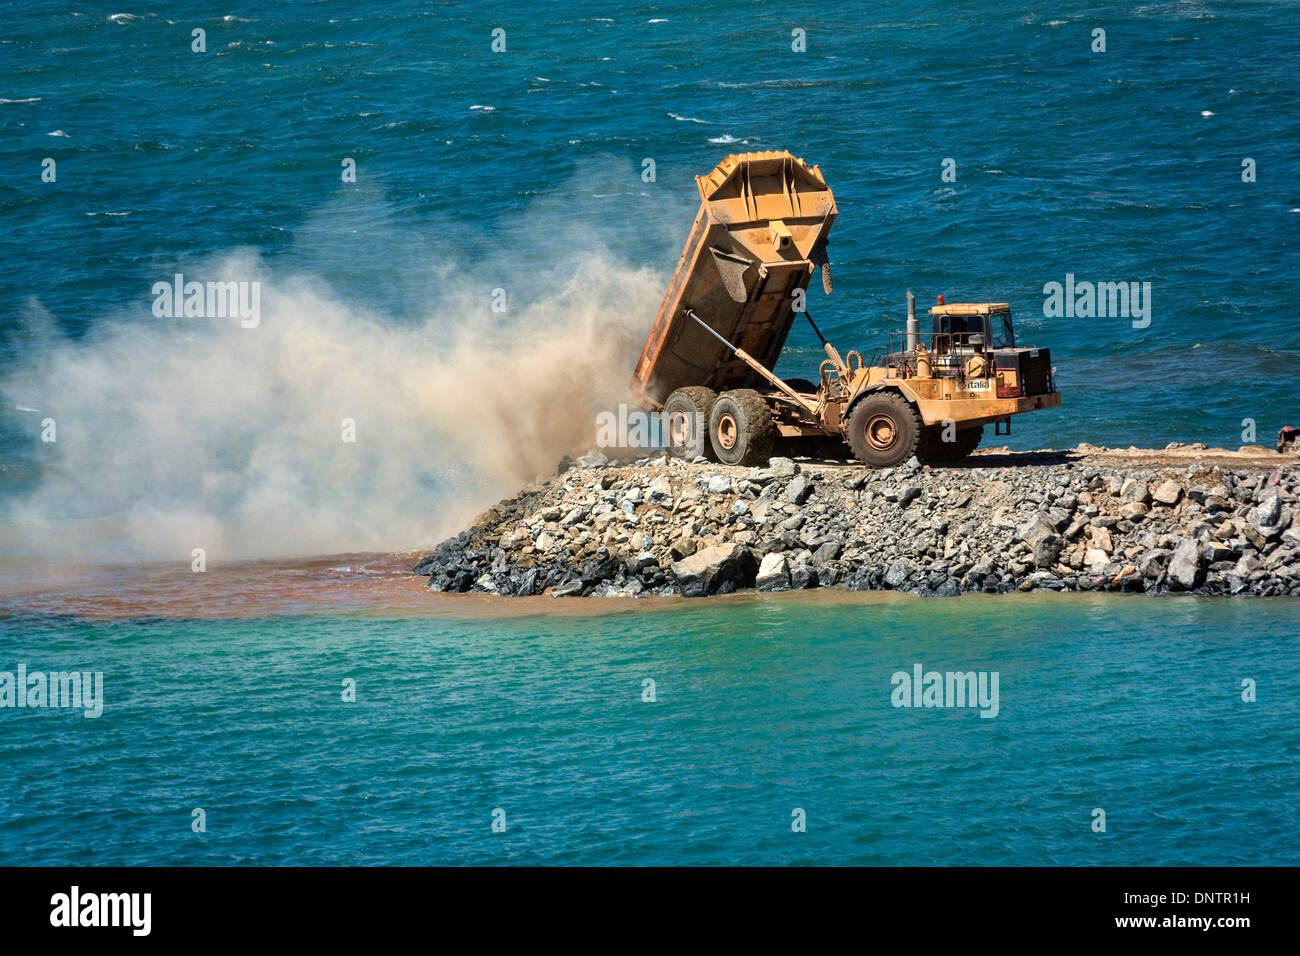 Construction of the Augusta Boat Harbour Mariner in Feb 2013, Augusta Western Australia - Stock Image